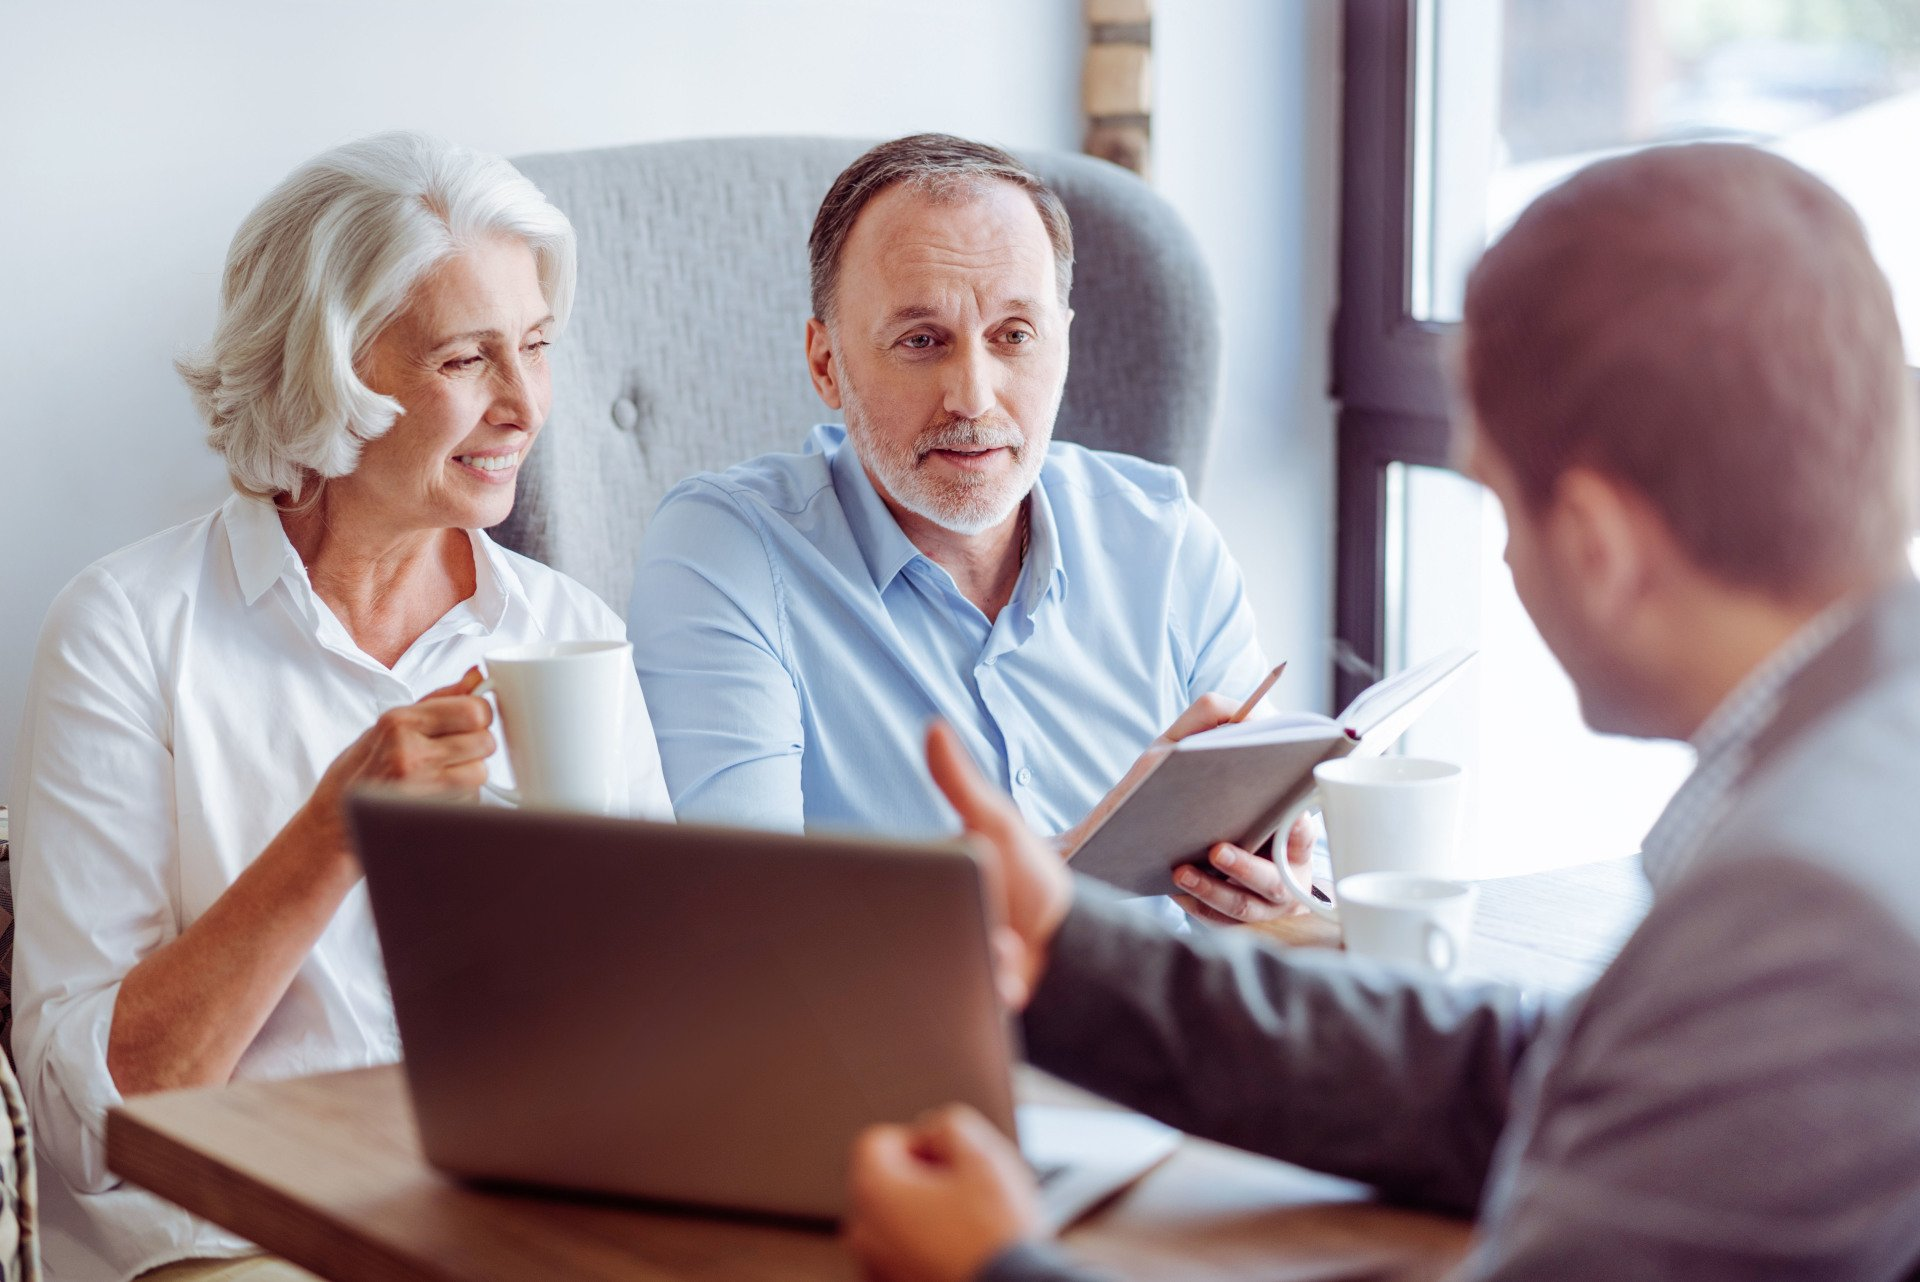 Viewing your Medicare coverage decisions through the following four categories can help you zero in on which plans will work best for you.